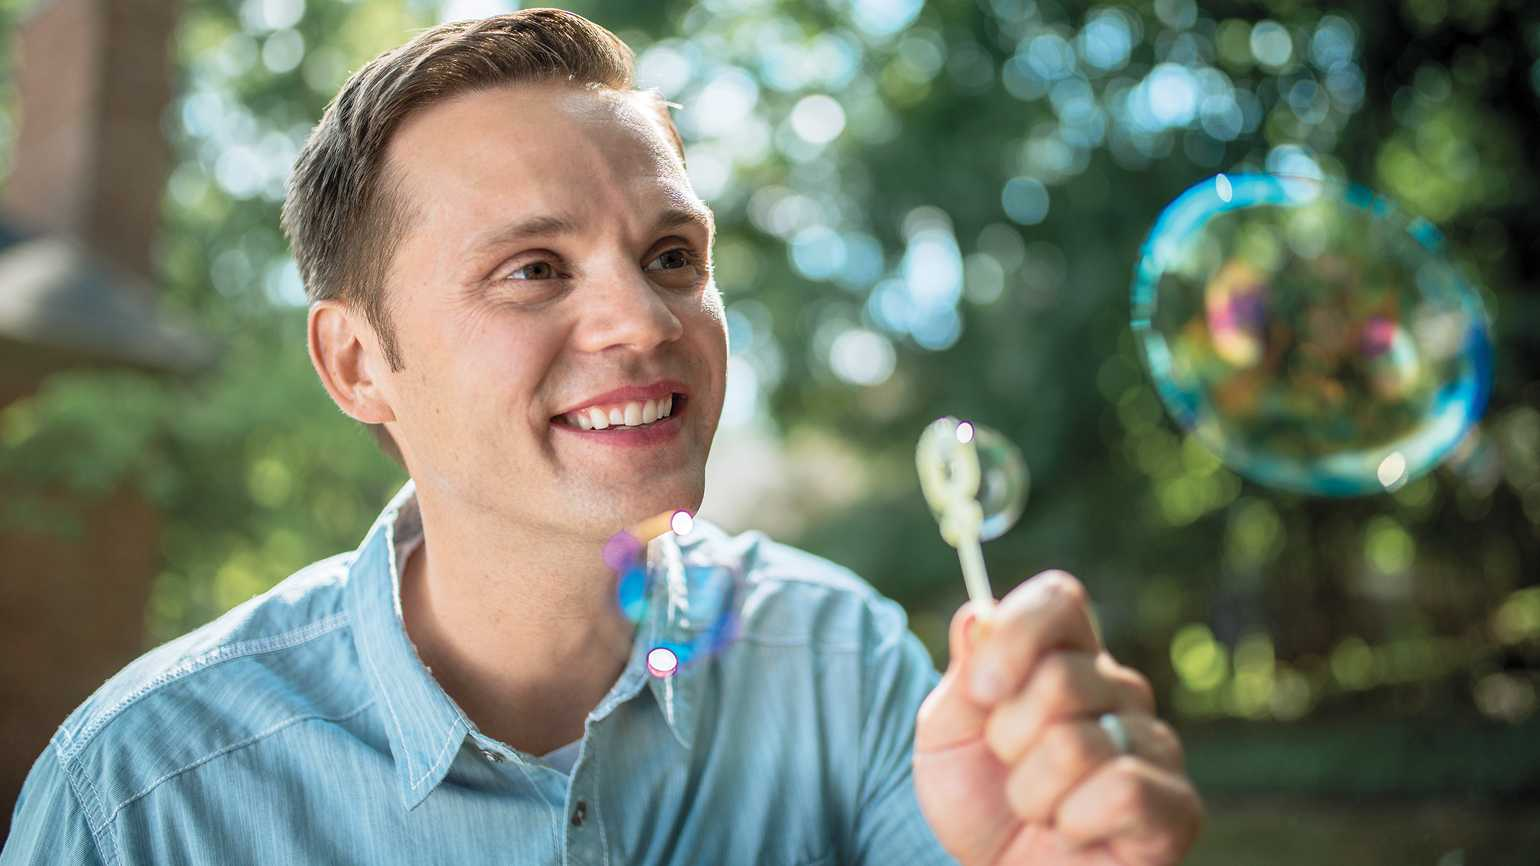 Dr. Anthony T. DeBenedet blowing bubbles outdoors.